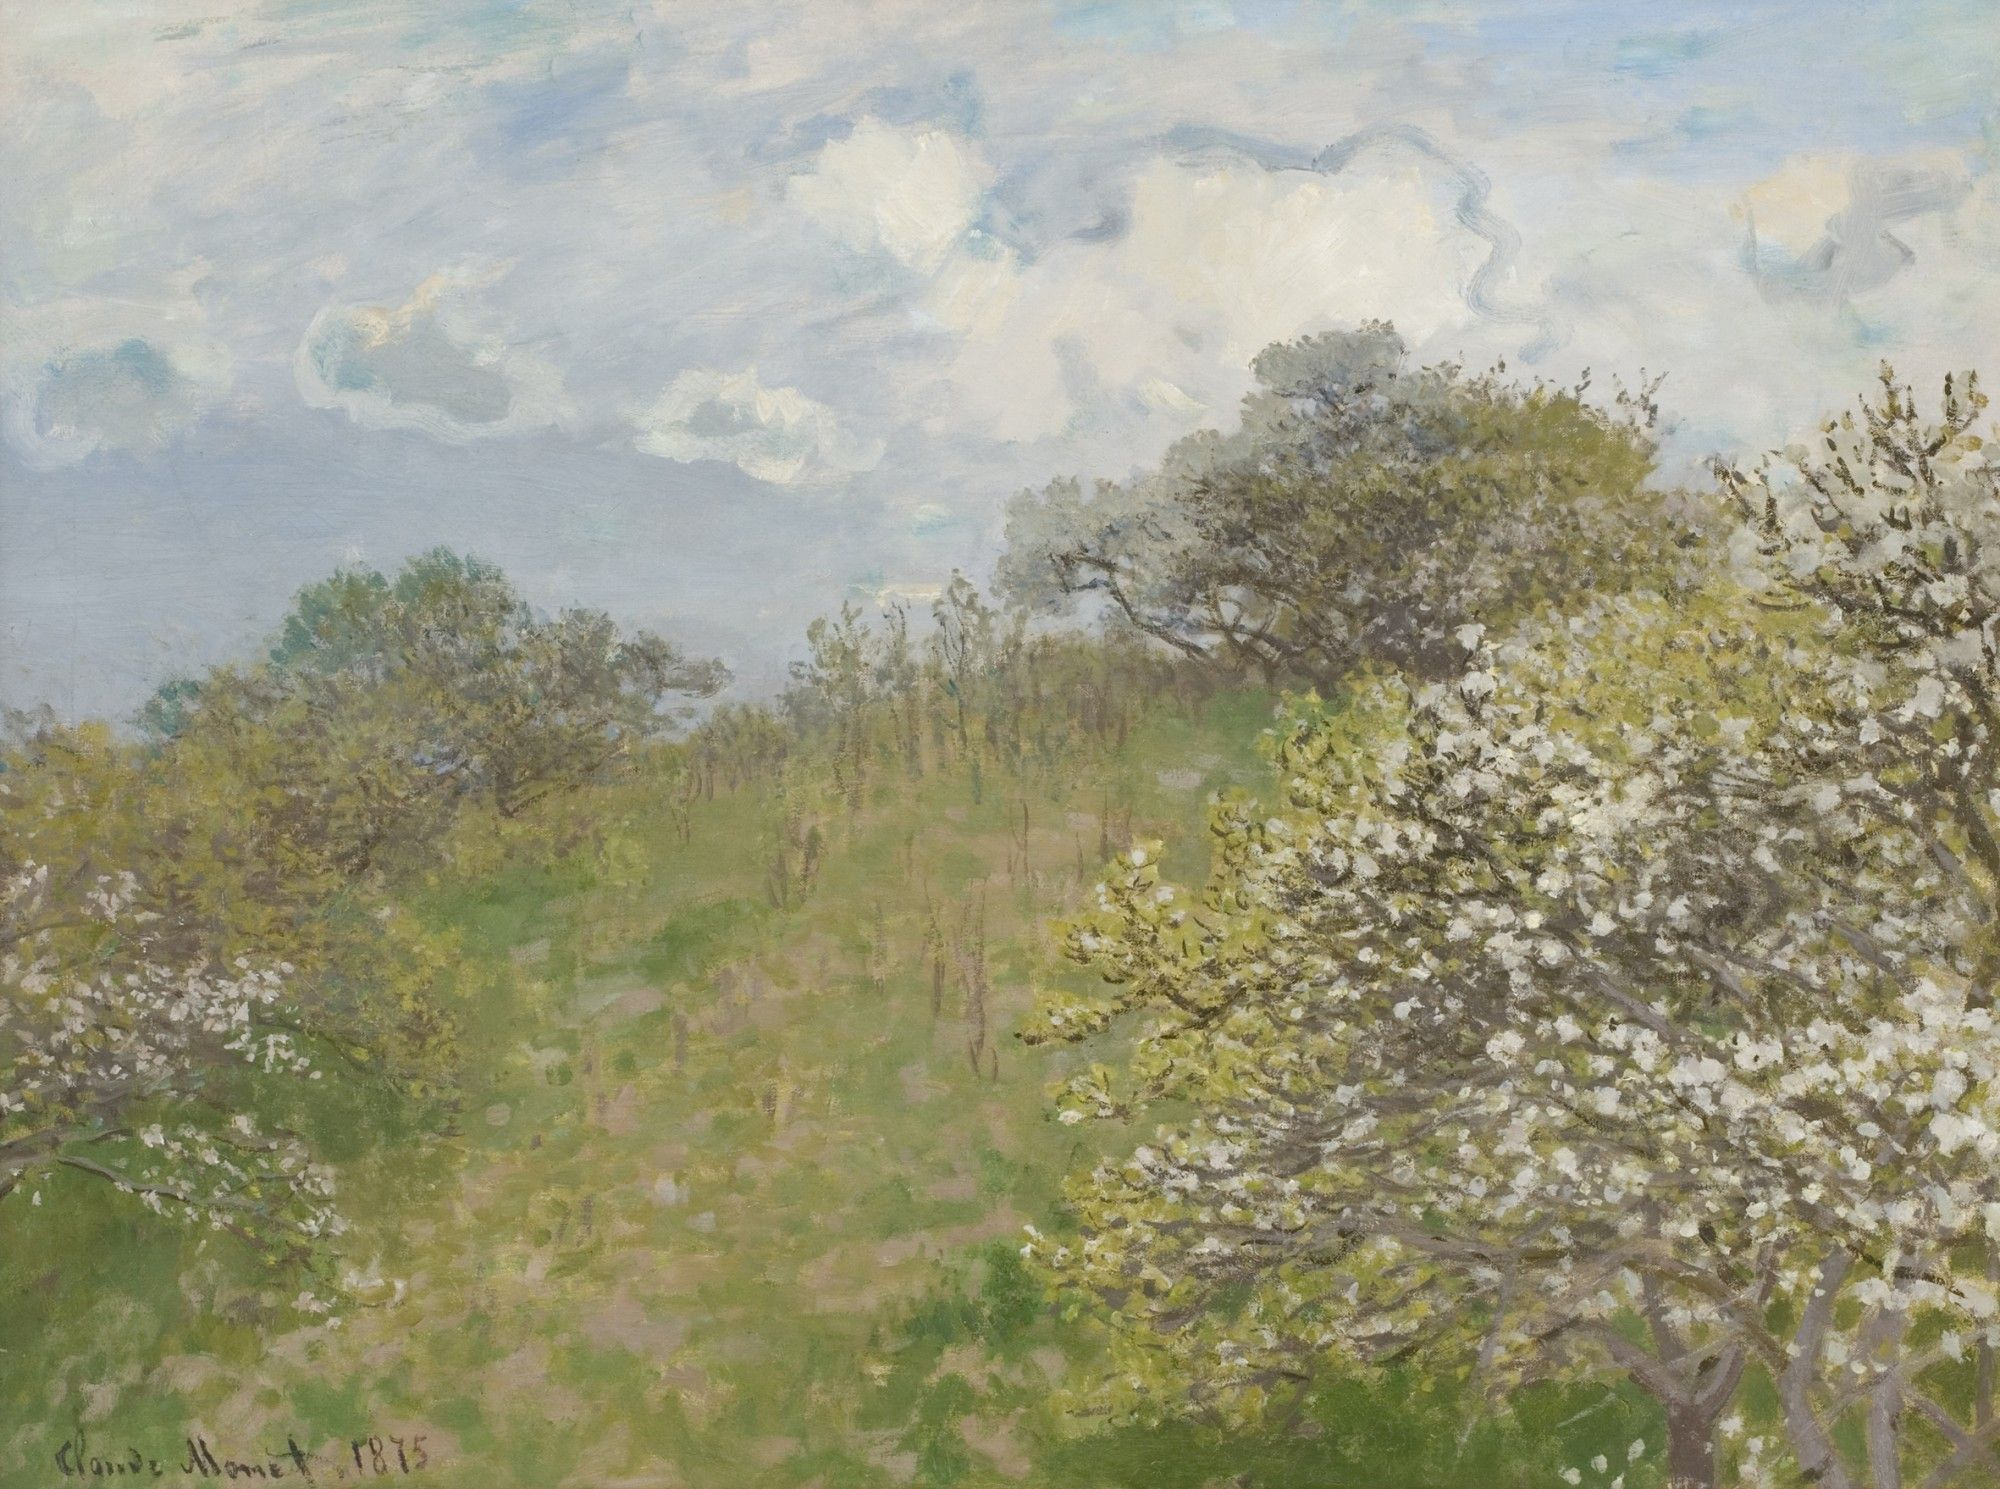 Monet Pintor Cuadros Printemps Claude Monet 1873 Johannesburg Art Gallery